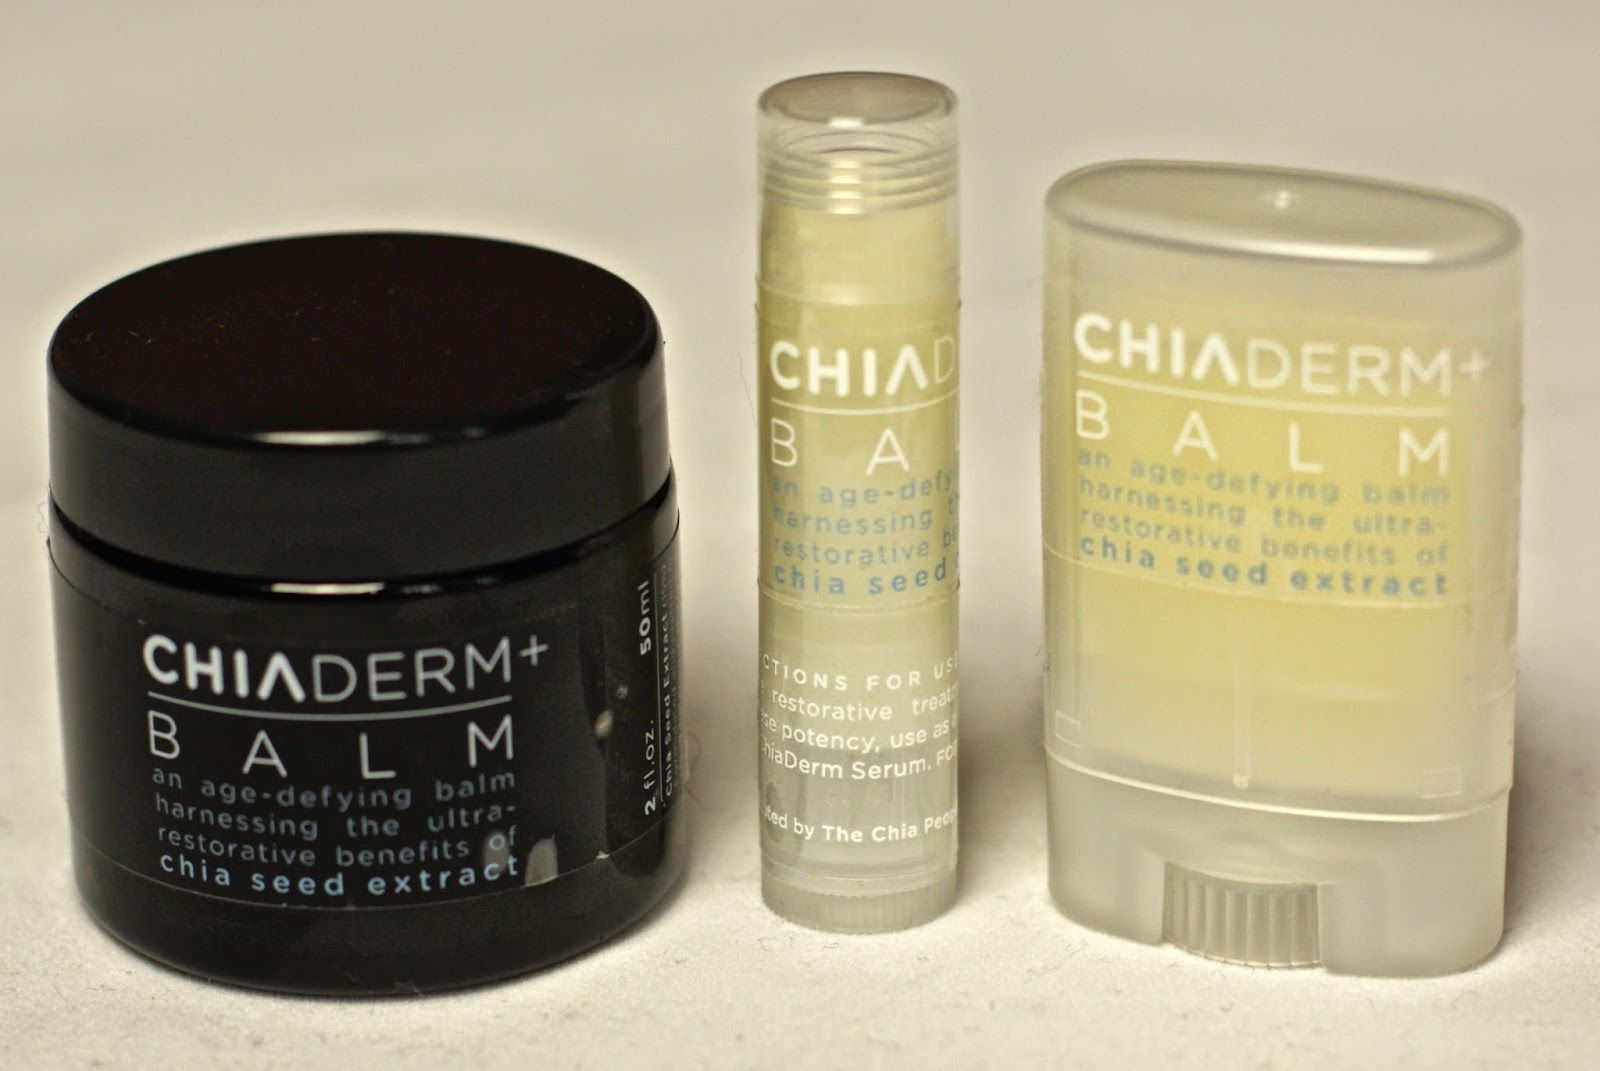 ChiaDerm+ lip balms with chia seeds